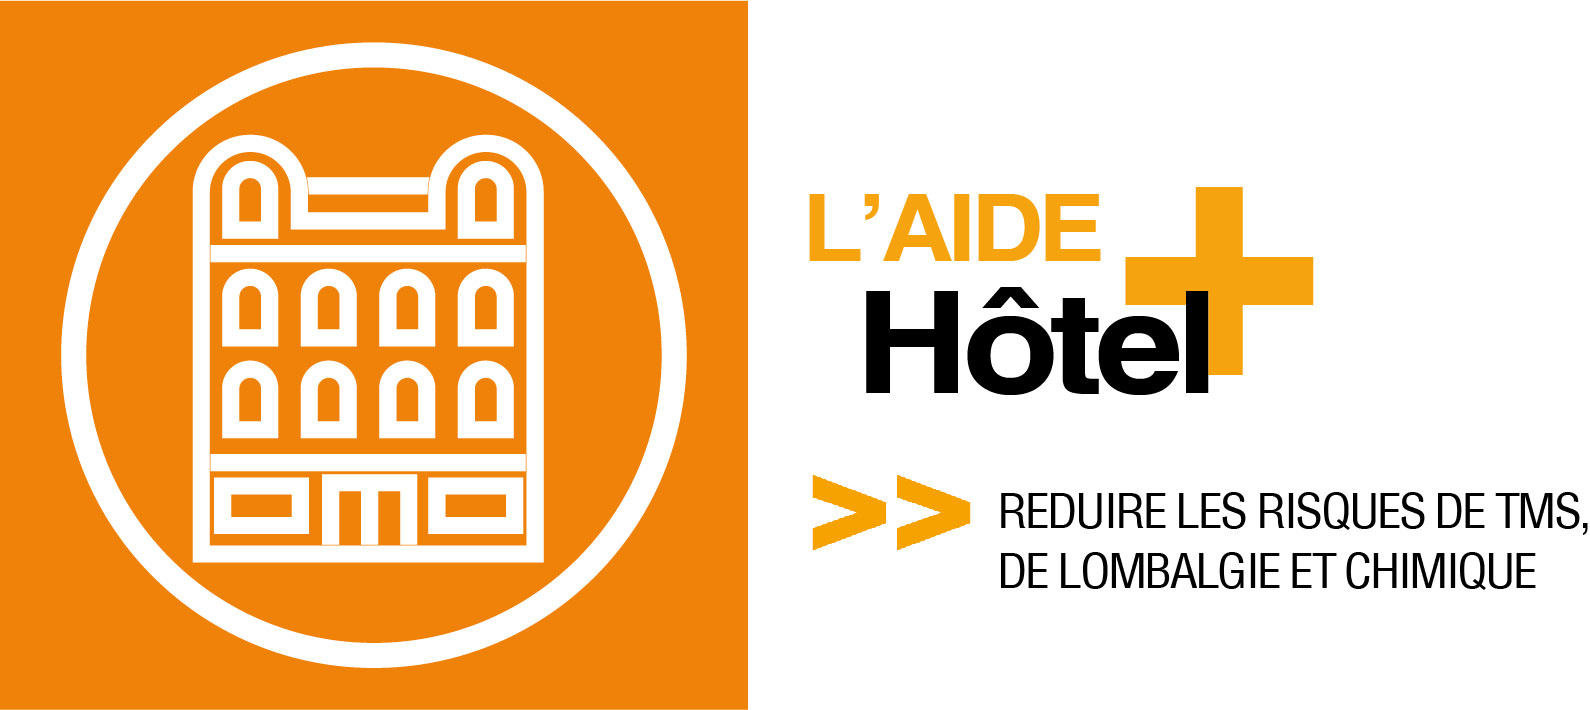 Hotel plus page